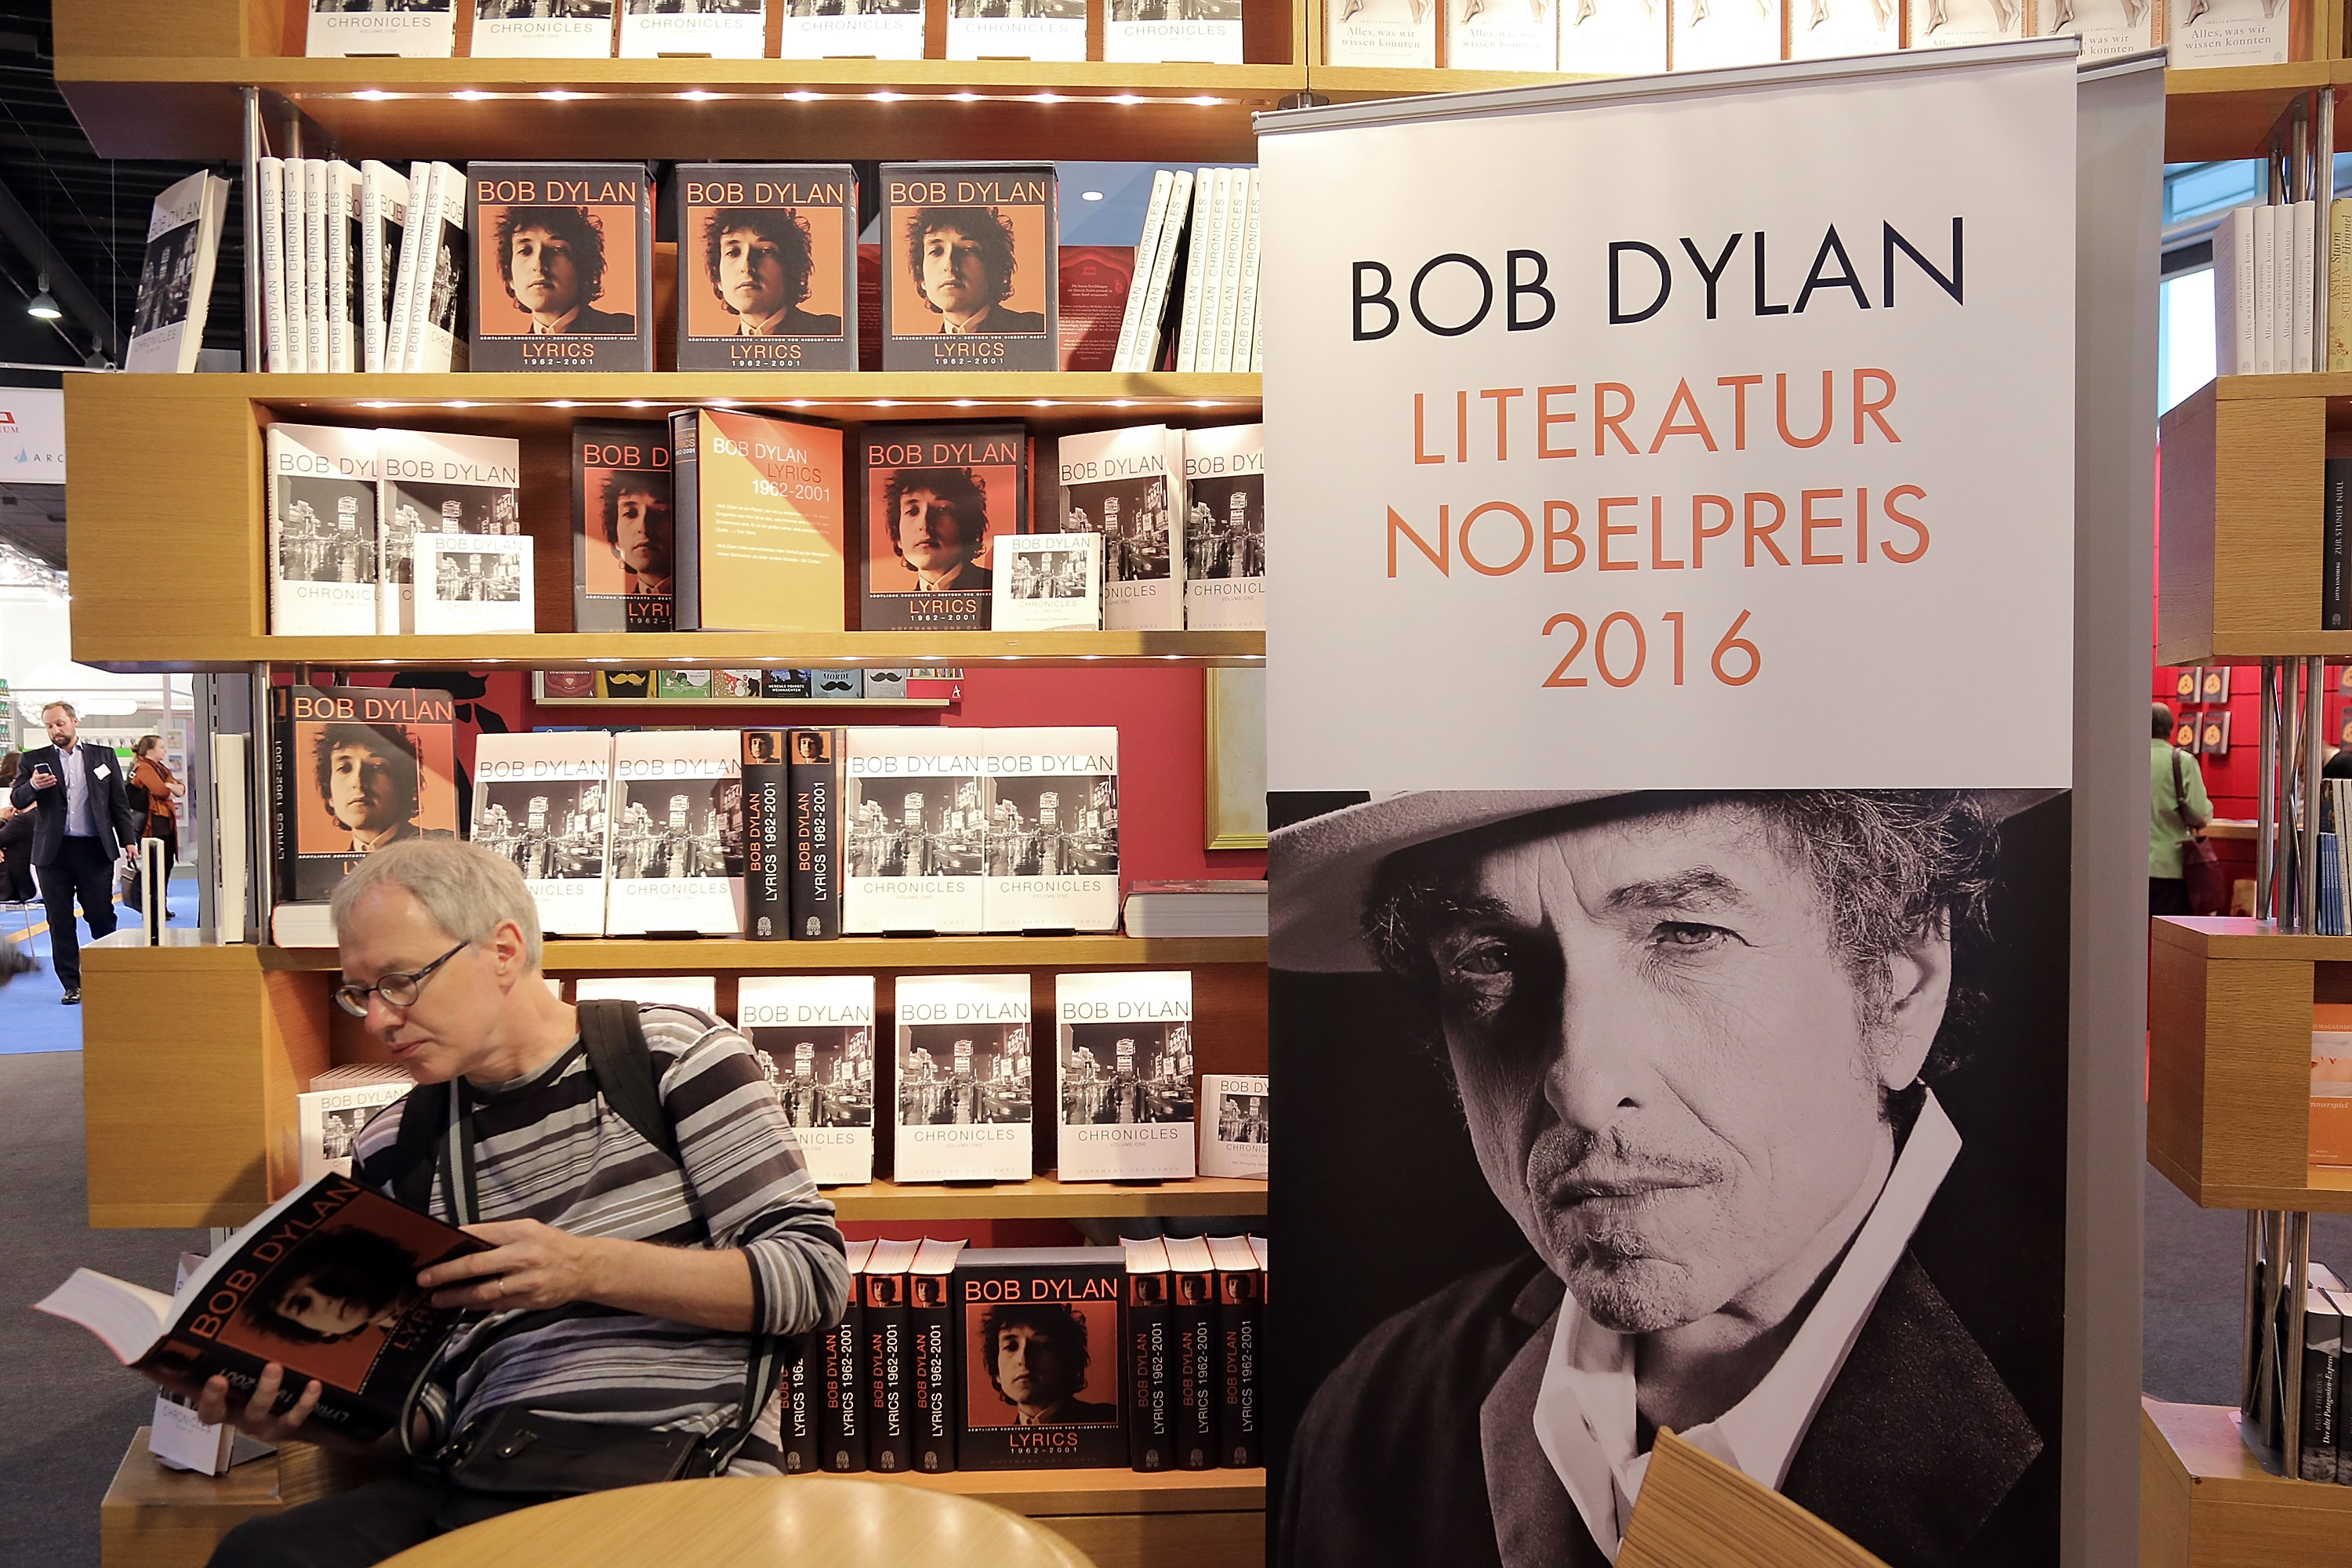 FRANKFURT AM MAIN, GERMANY - OCTOBER 19:  A man reads a book about Bob Dylan at the 2016 Frankfurt Book Fair (Frankfurter Buc